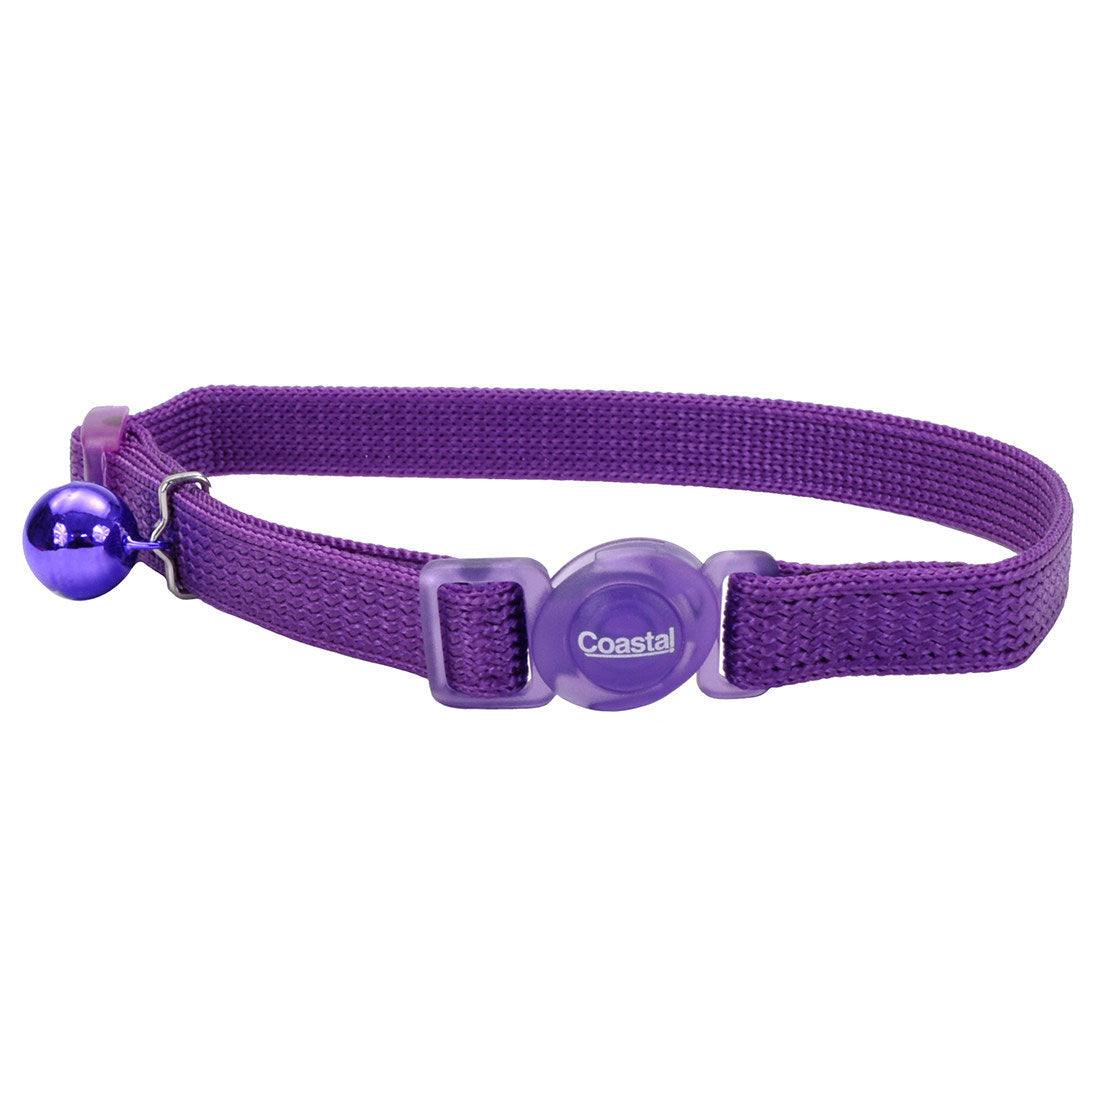 Coastal Snag-Proof Collar Purple - Collares para Gatos